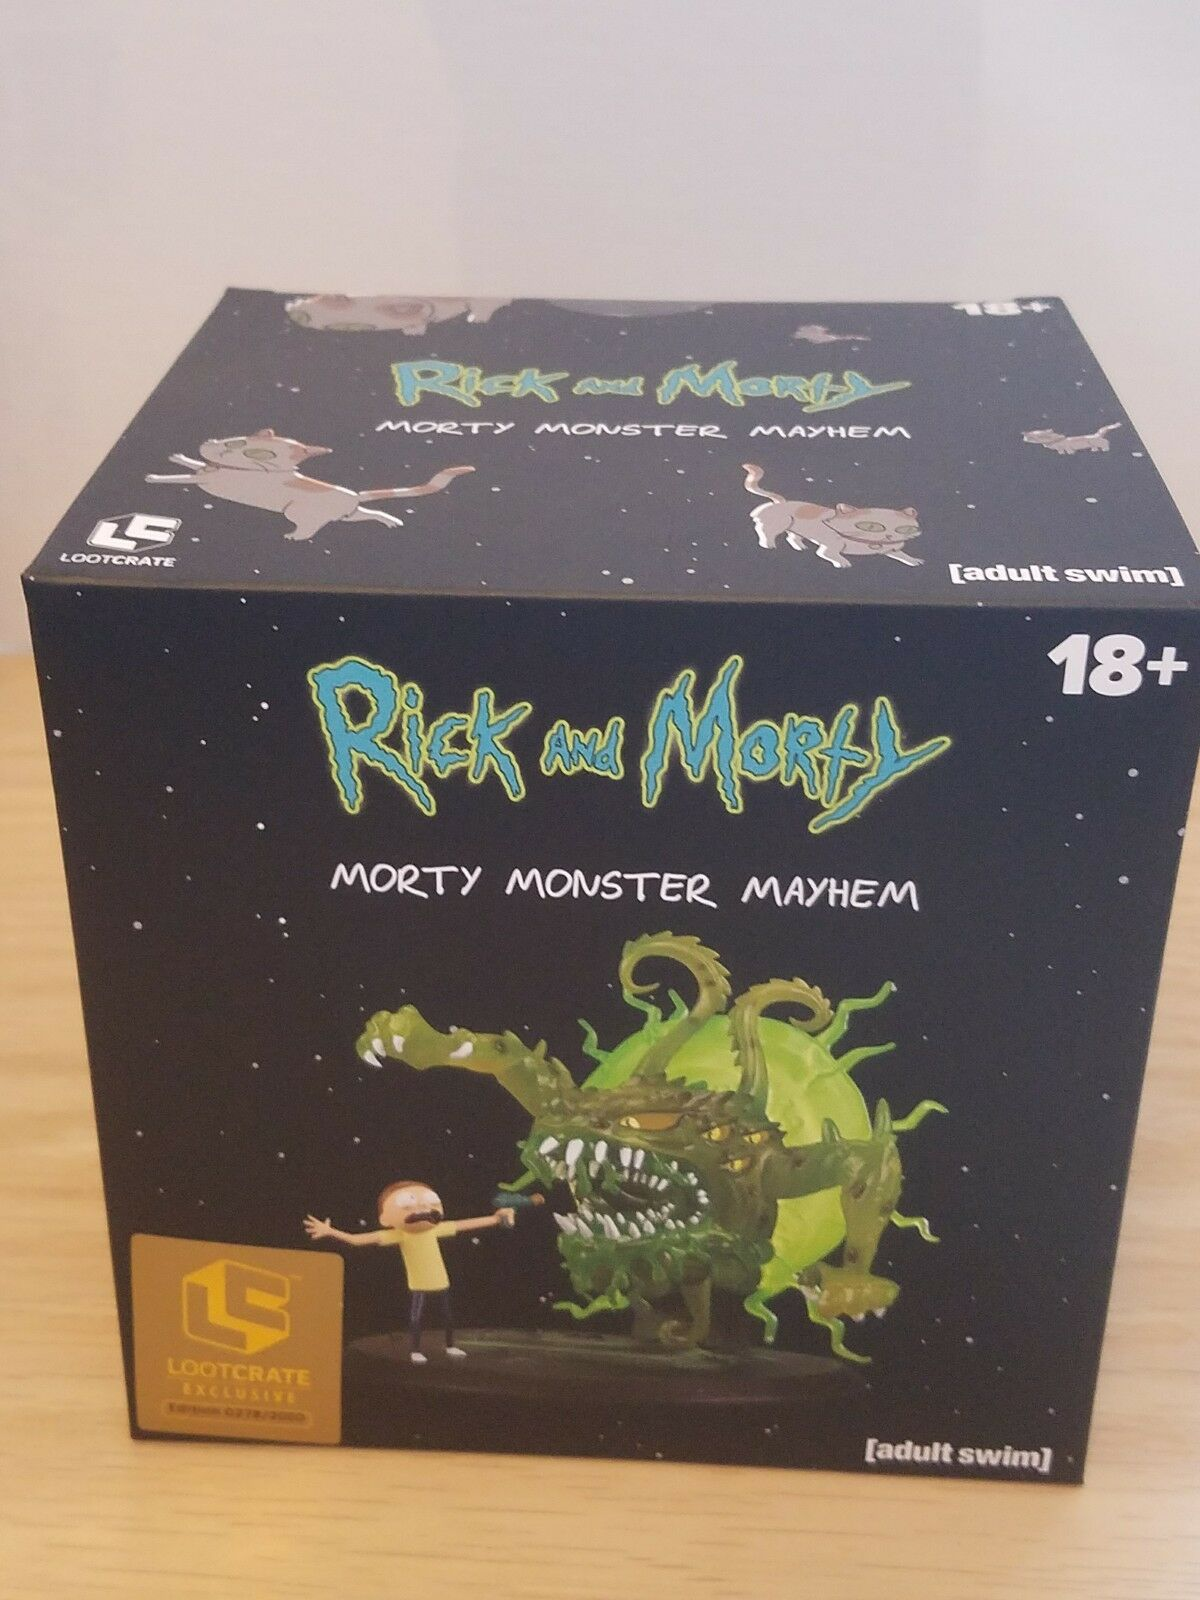 SDCC 2018 Loot Crate Rick and Morty Total Mayhem Figure Exclusive LE 2000 made.